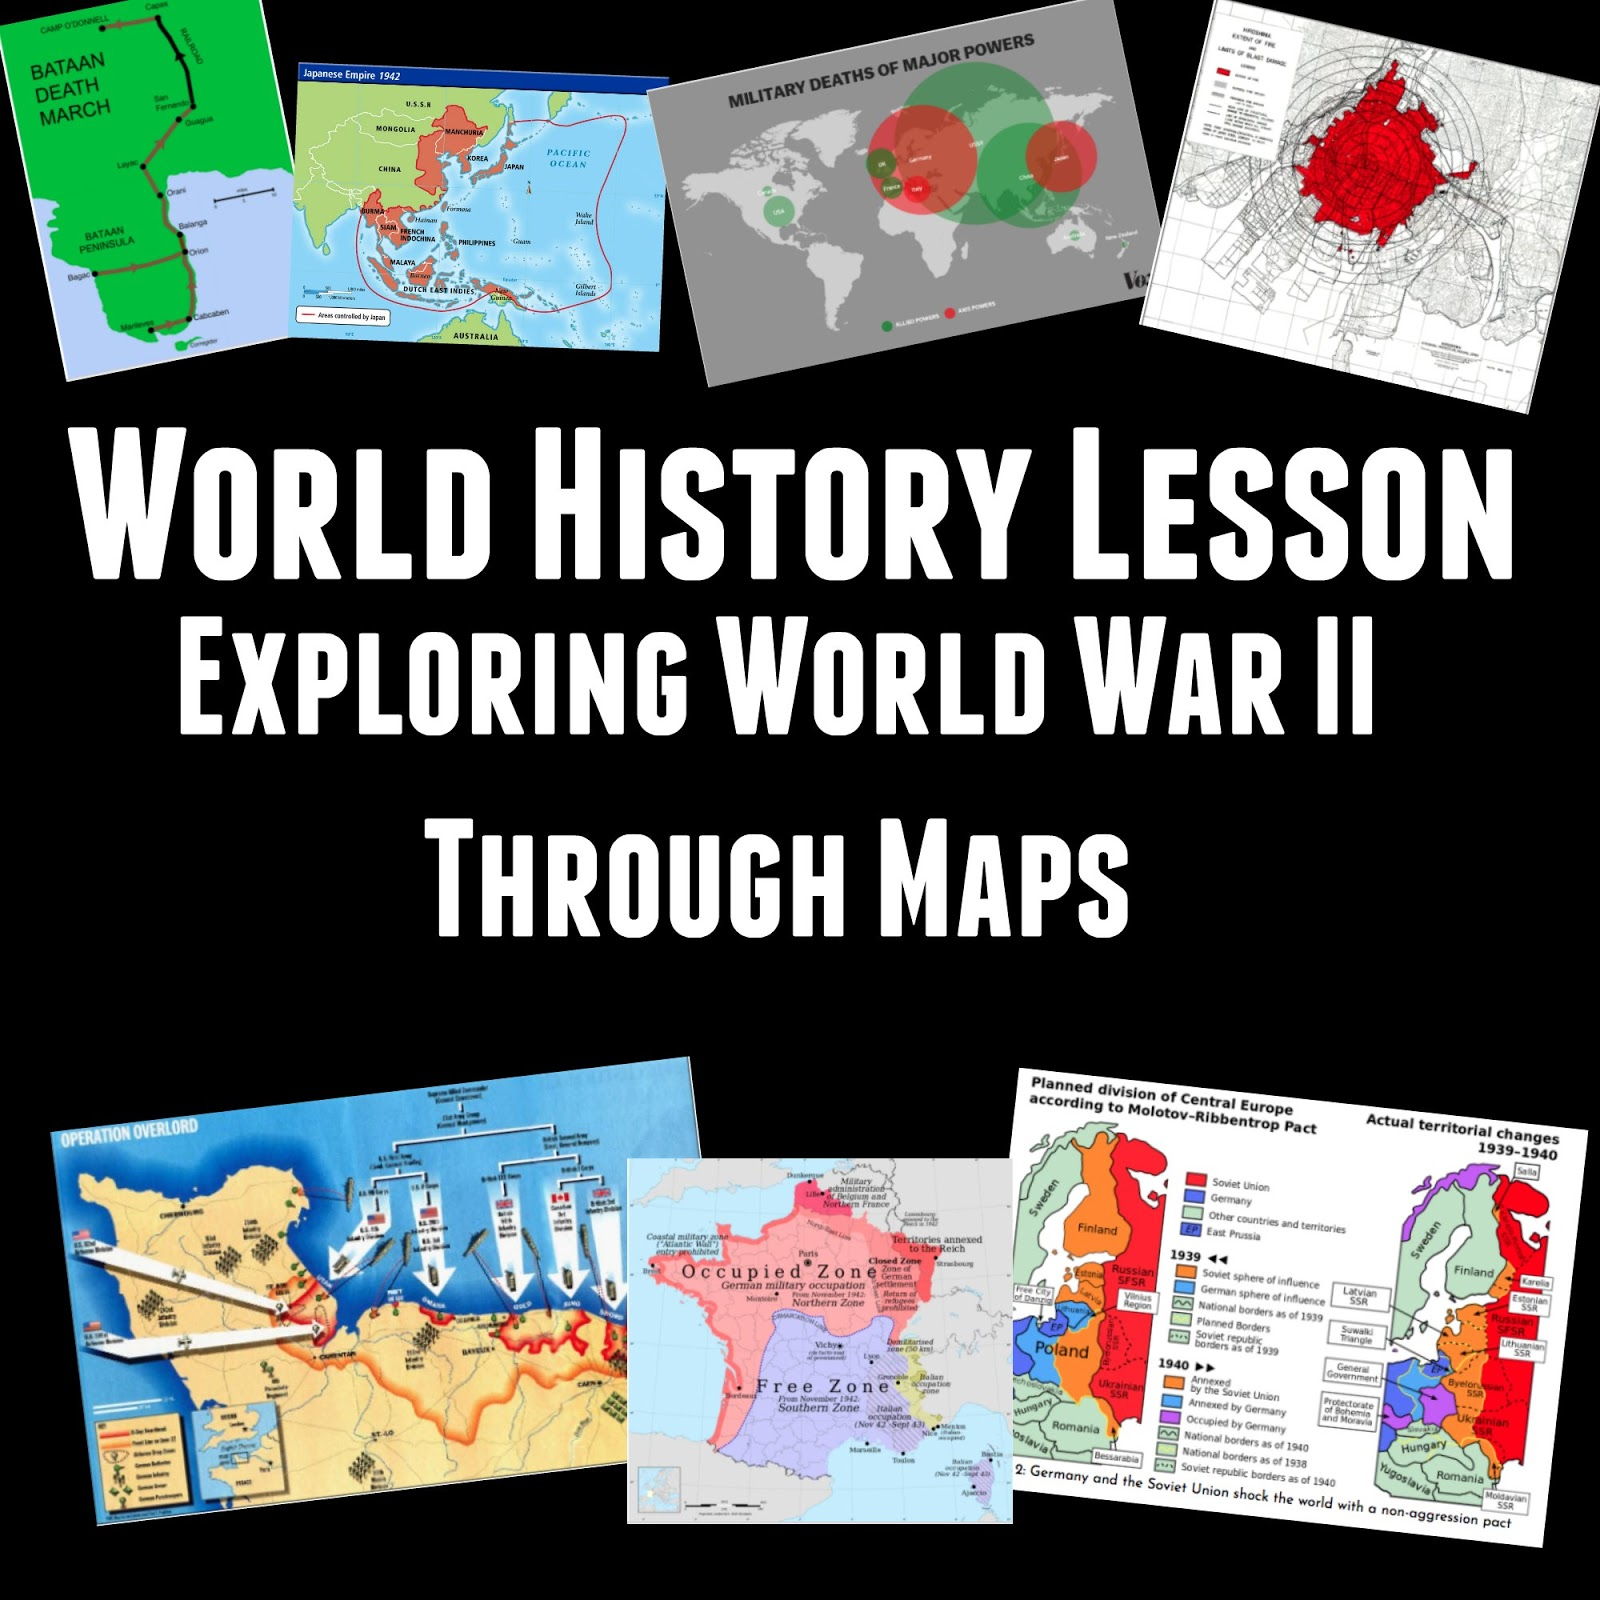 i think maps in the history classroom are incredibly important tools for helping students understand the world